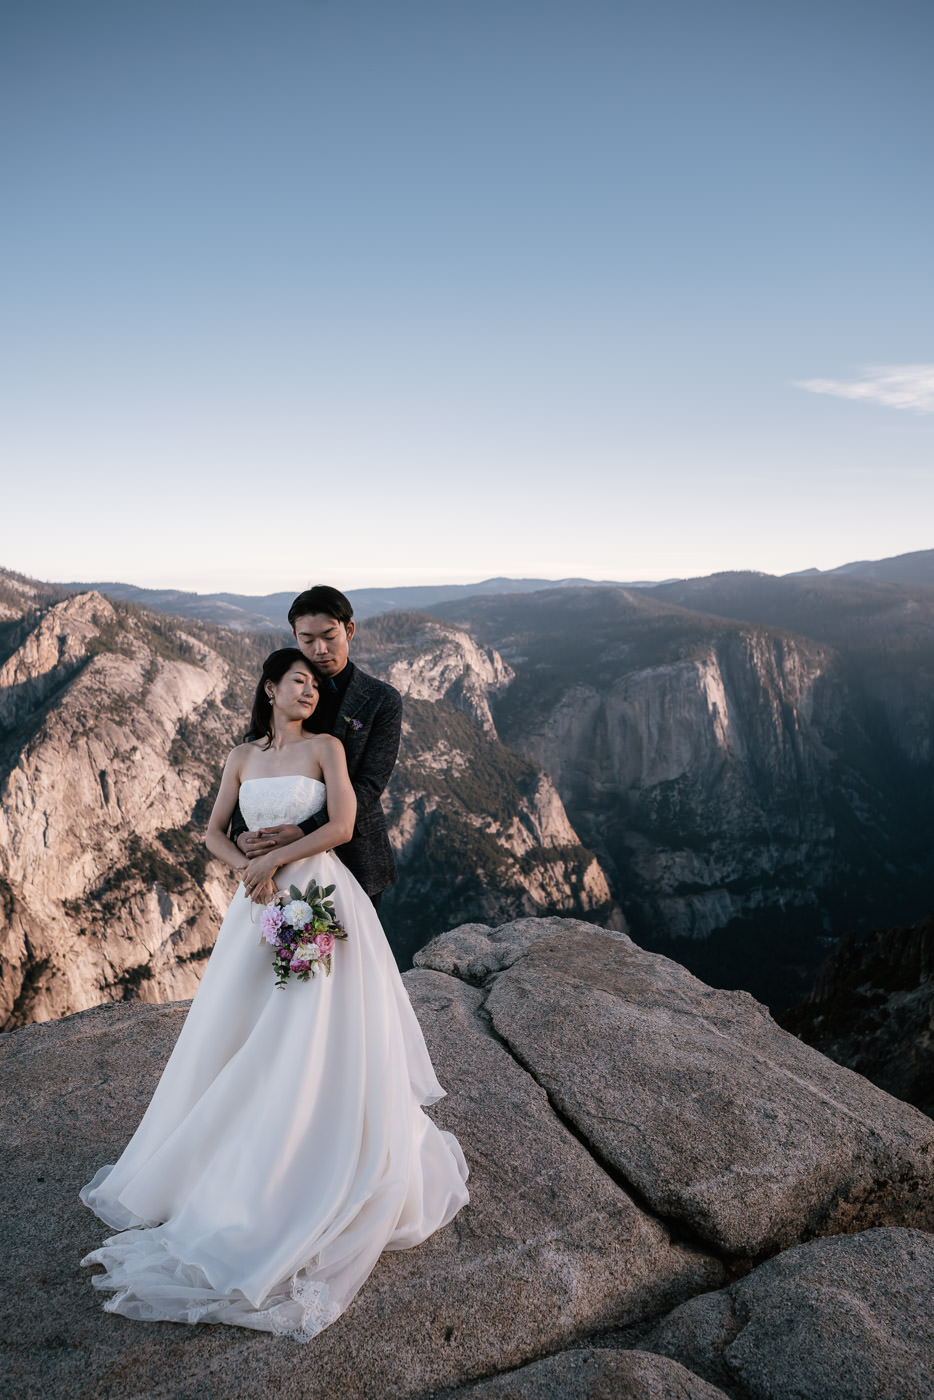 Classic wedding photo on the cliffs of Taft Point.